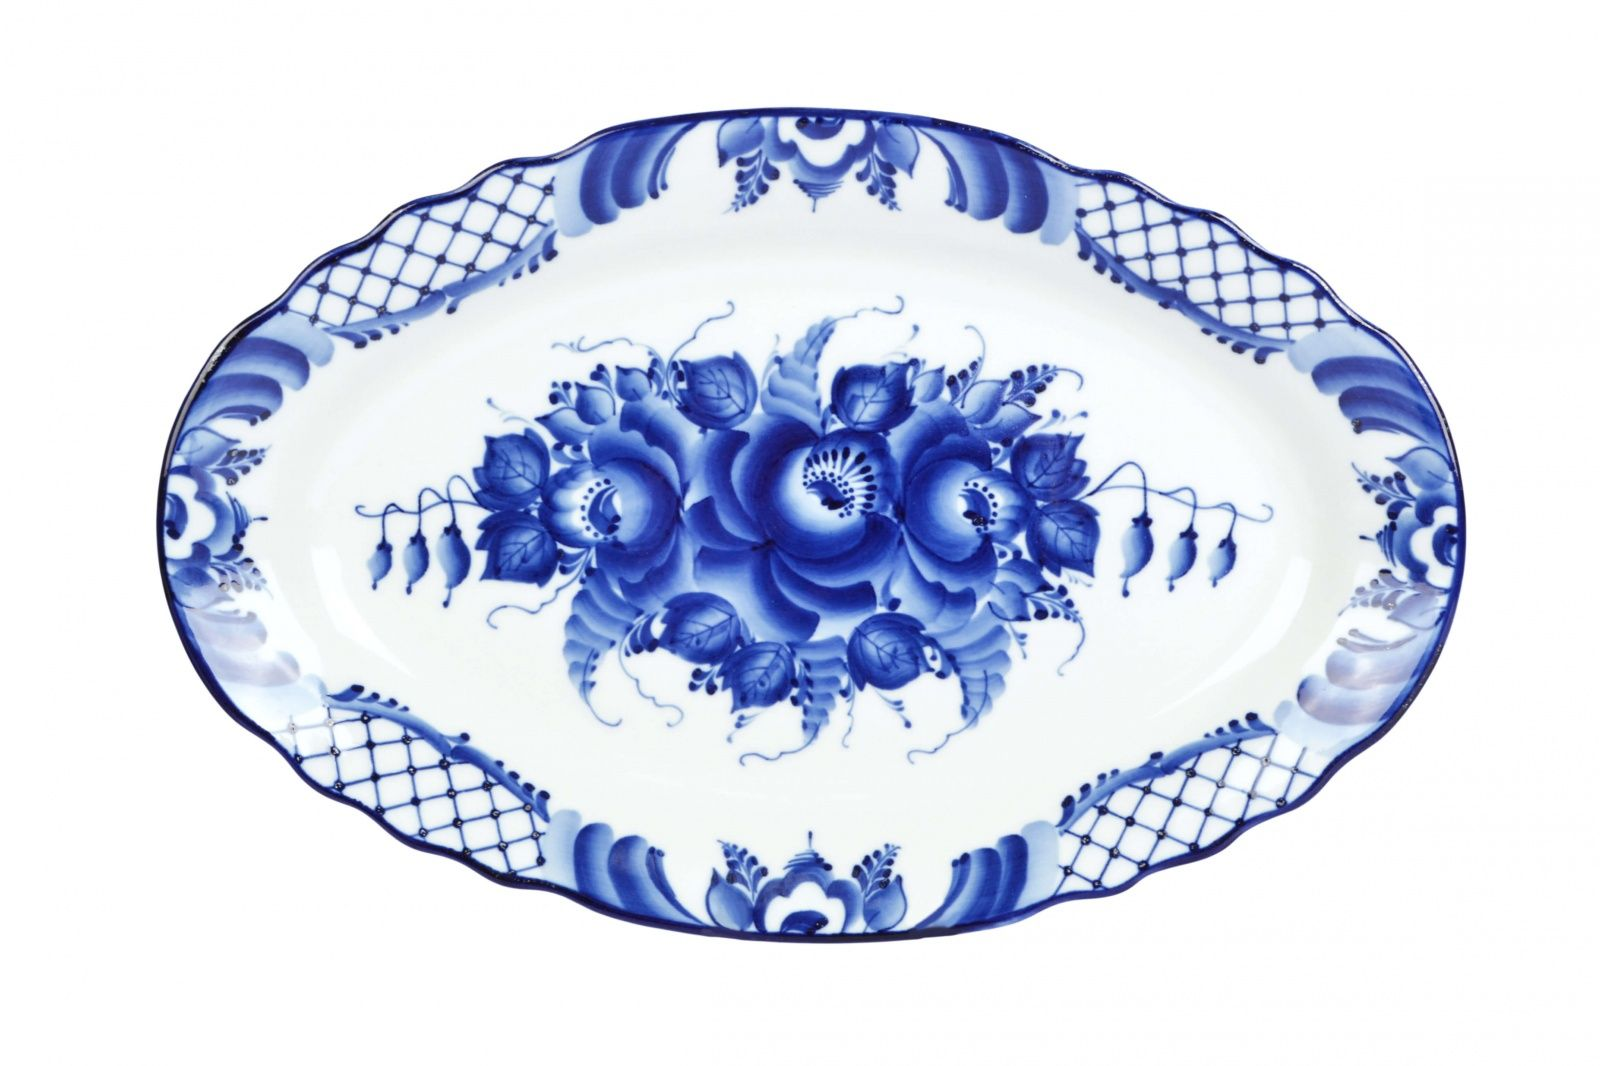 Dulevo porcelain / Oval dish 350 mm Carved edge Flowers